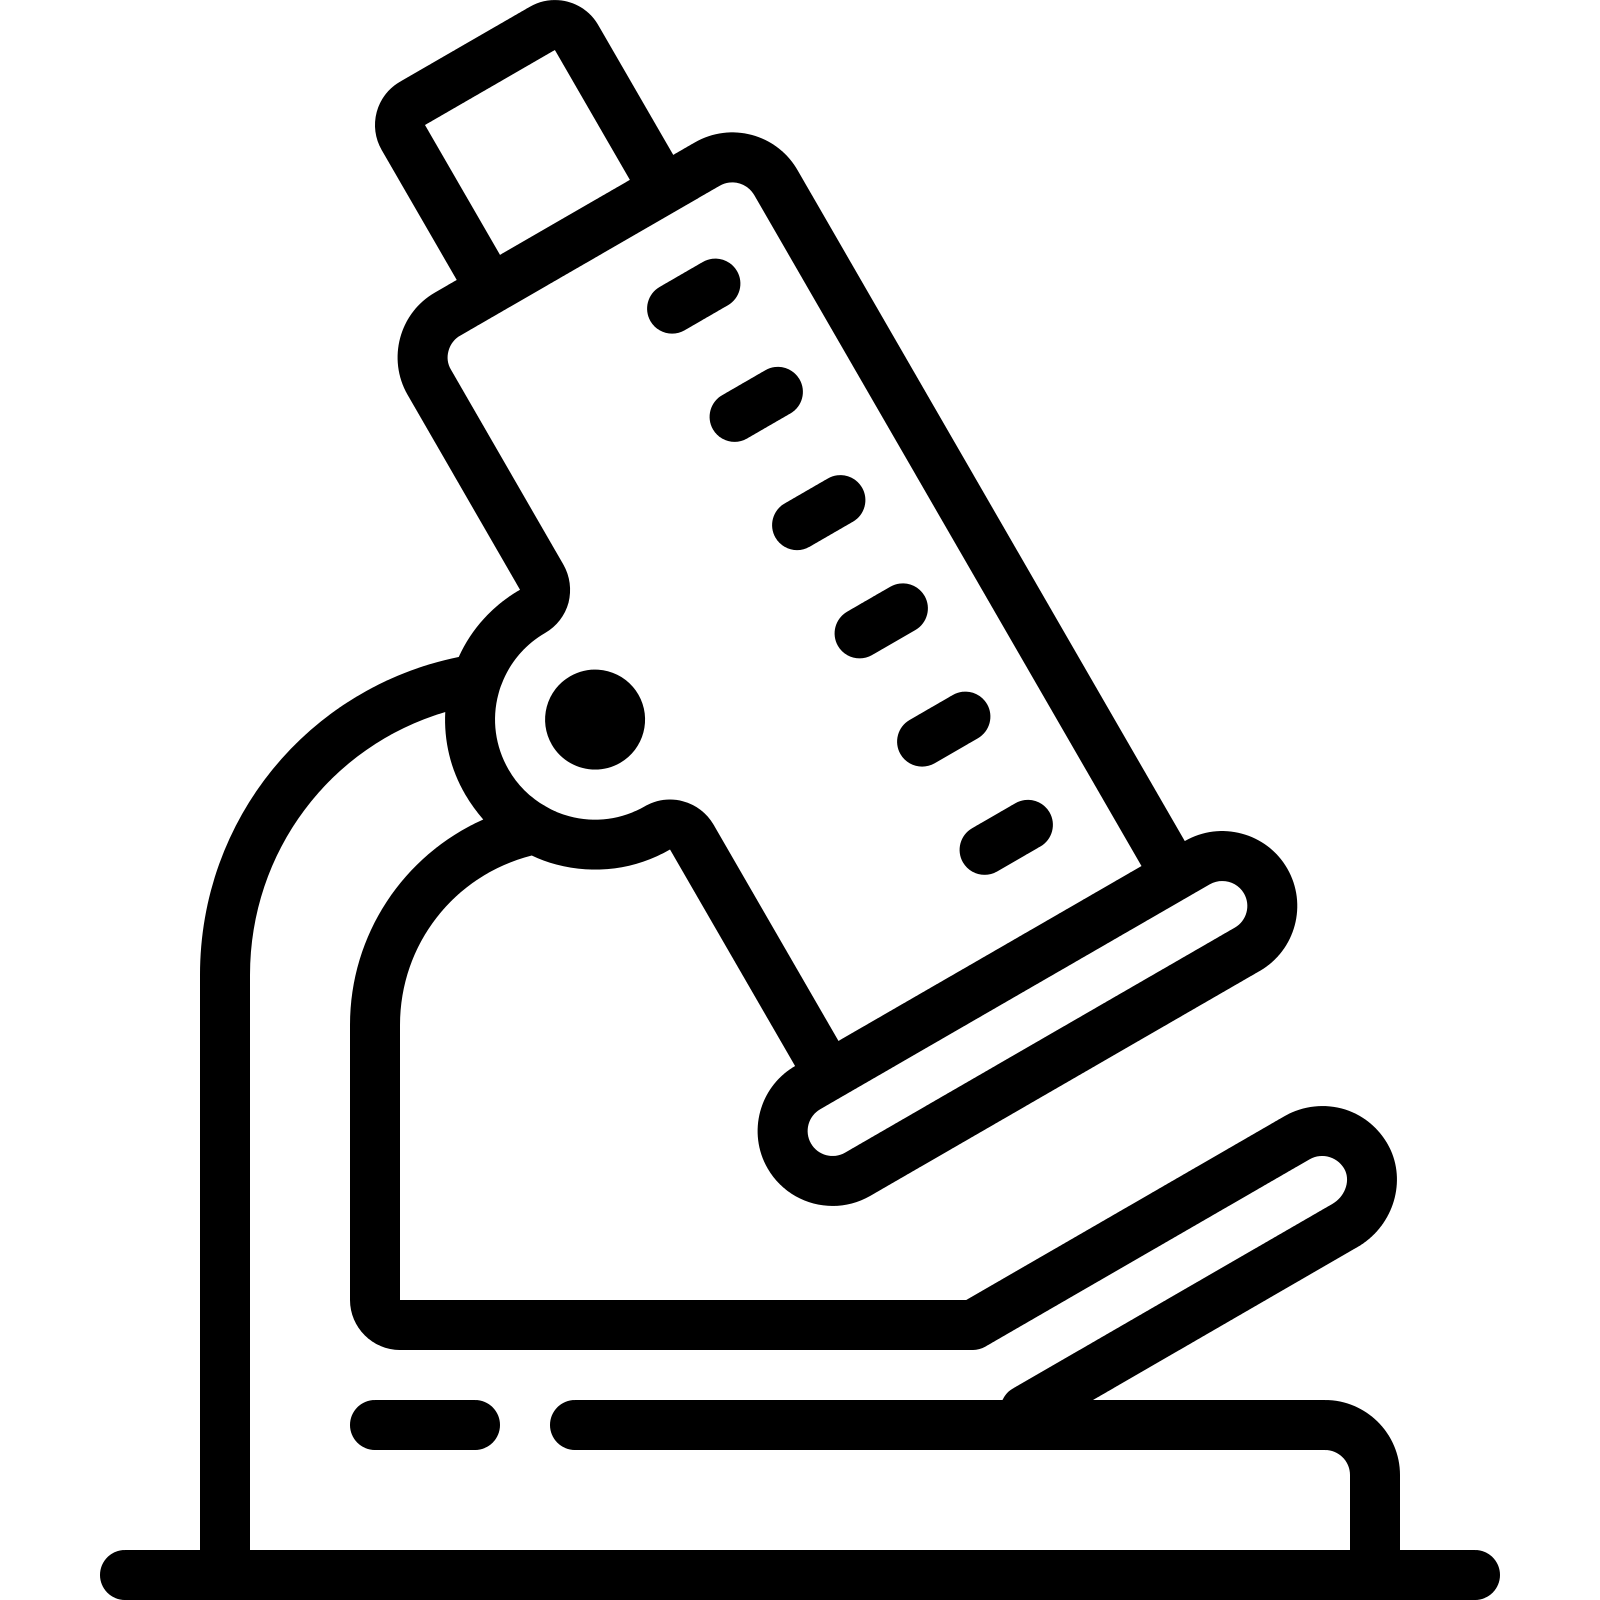 Microscope clipart science object. Icon transparent png stickpng